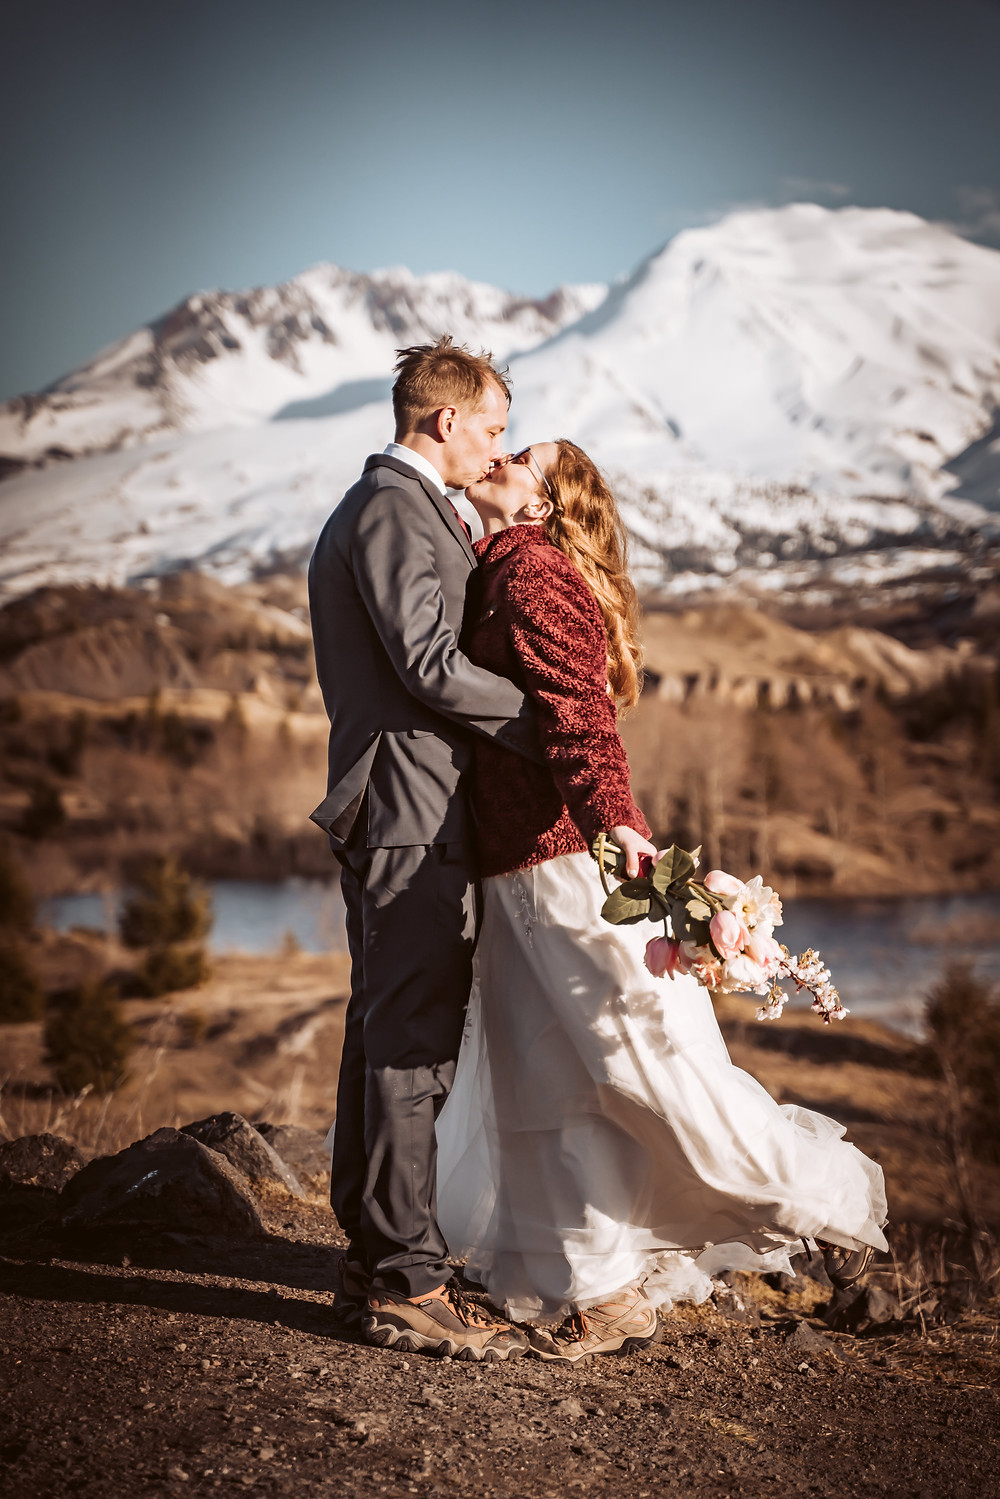 A bride and groom kissing in front of Mt. St. Helens for their elopement day